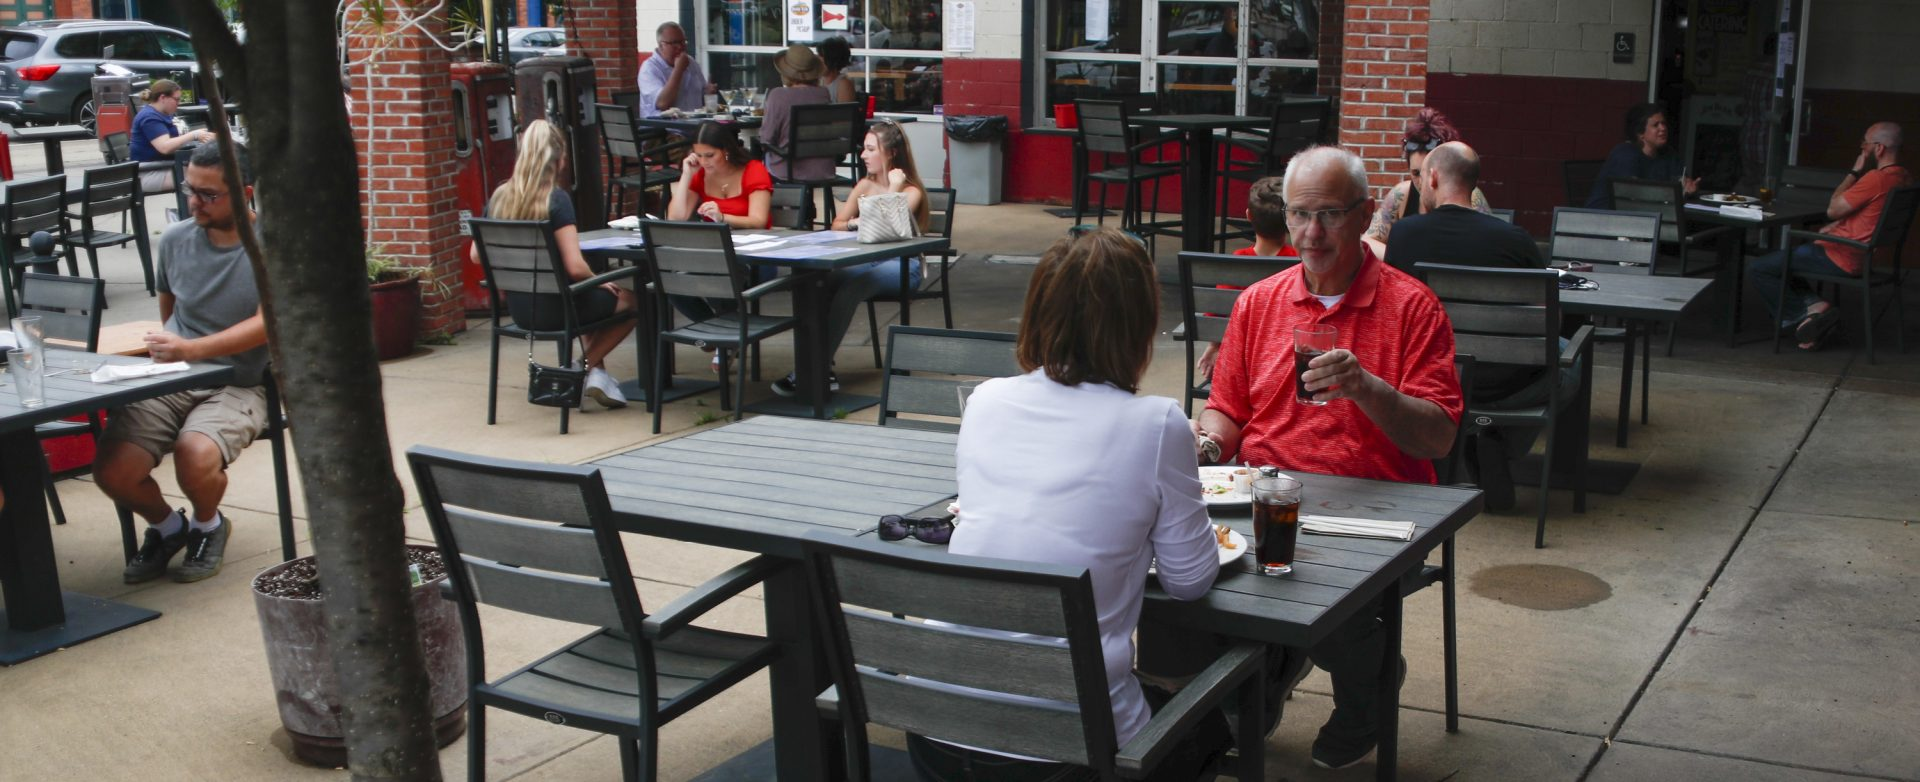 People take advantage of newly lowered COVID-19 protective restrictions in most of southwest Pennsylvania and have lunch outside on the re-opening day for seated patrons at a diner on Pittsburgh's Southside, Friday, June 5, 2020.